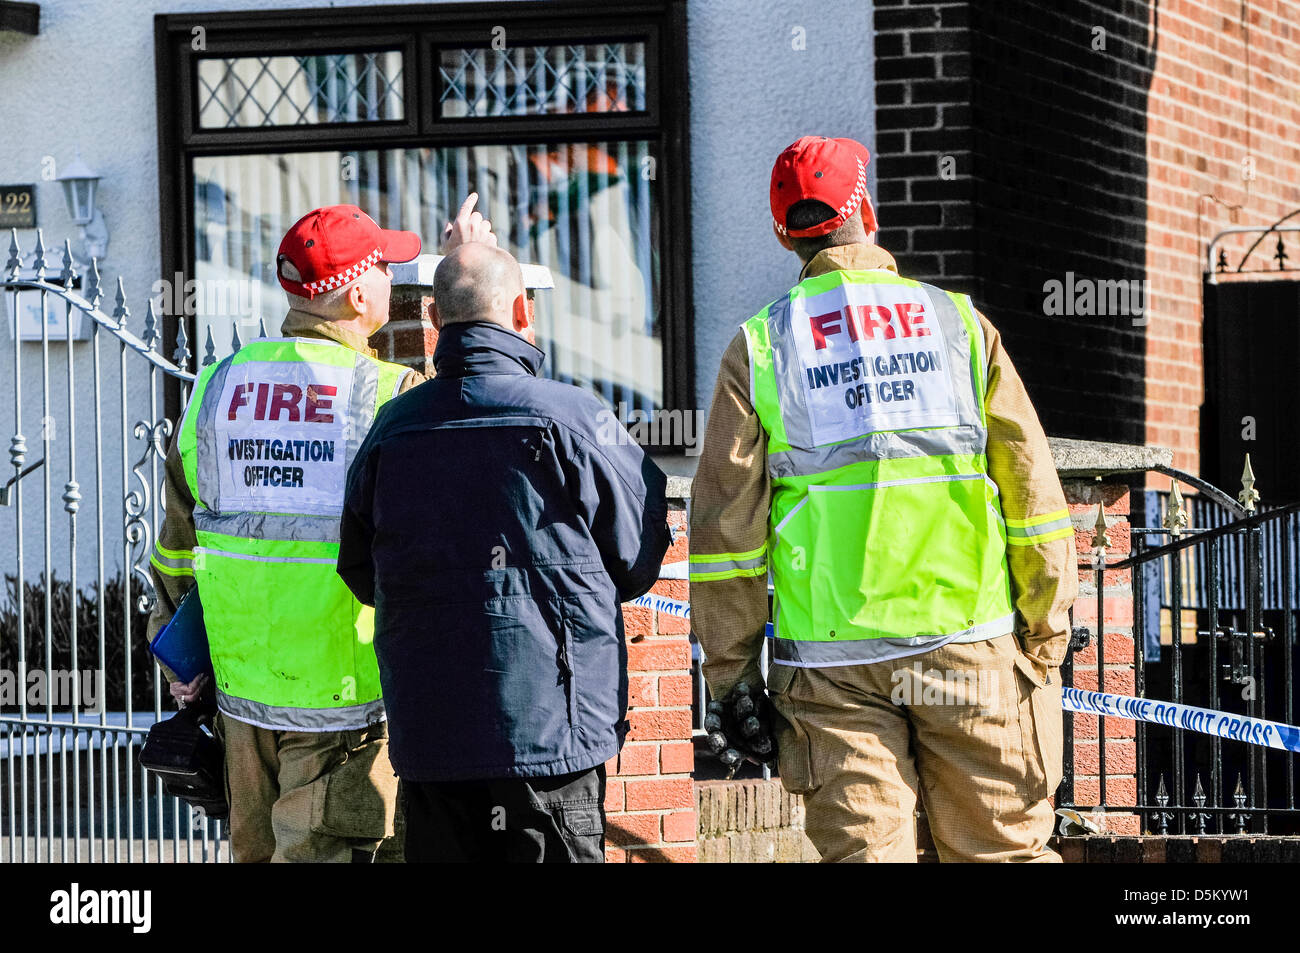 A fire investigation officer begins their examination of a fatal house fire. - Stock Image